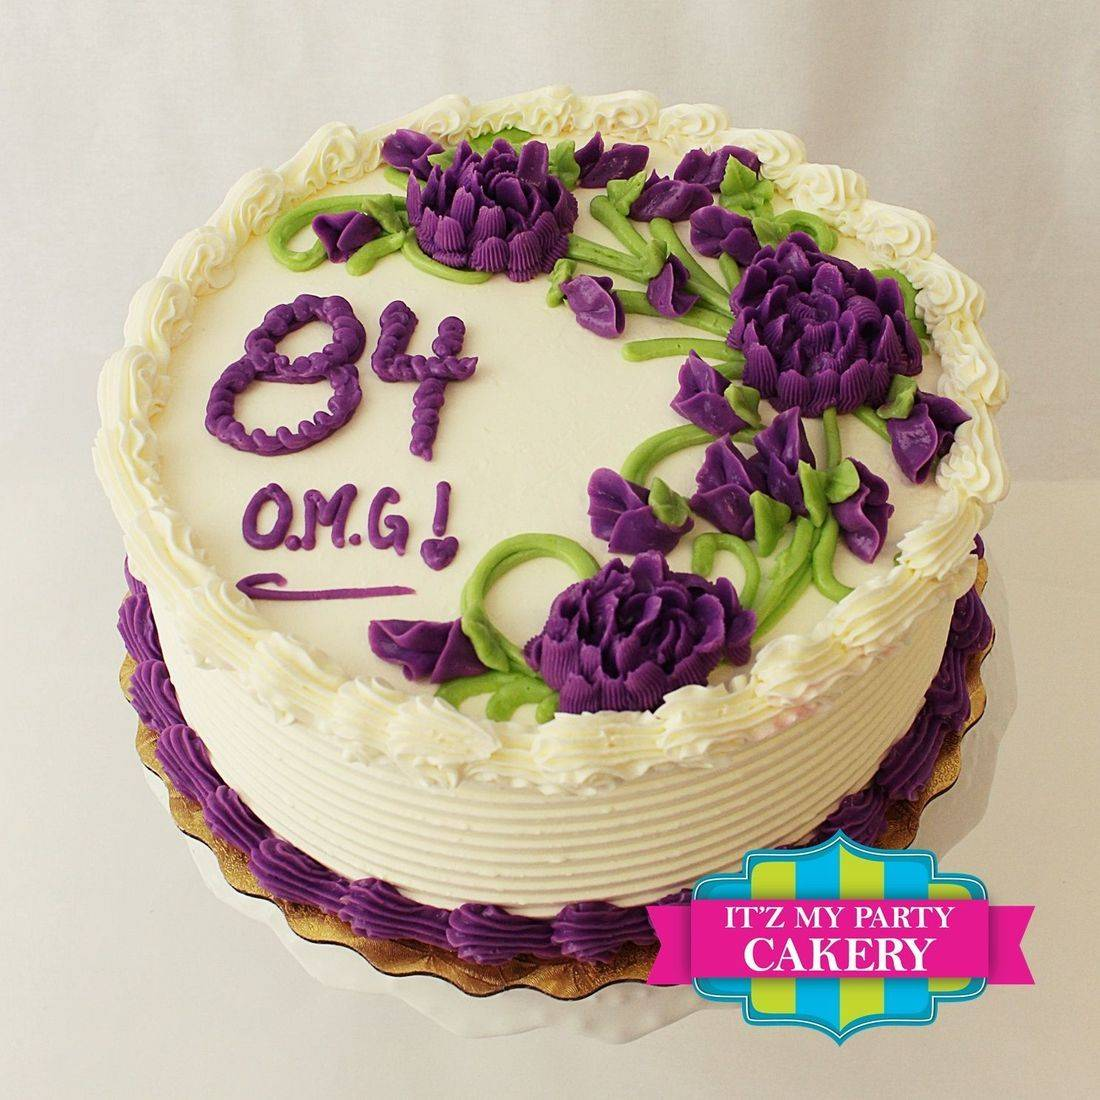 Buttercream cake, buttercream design